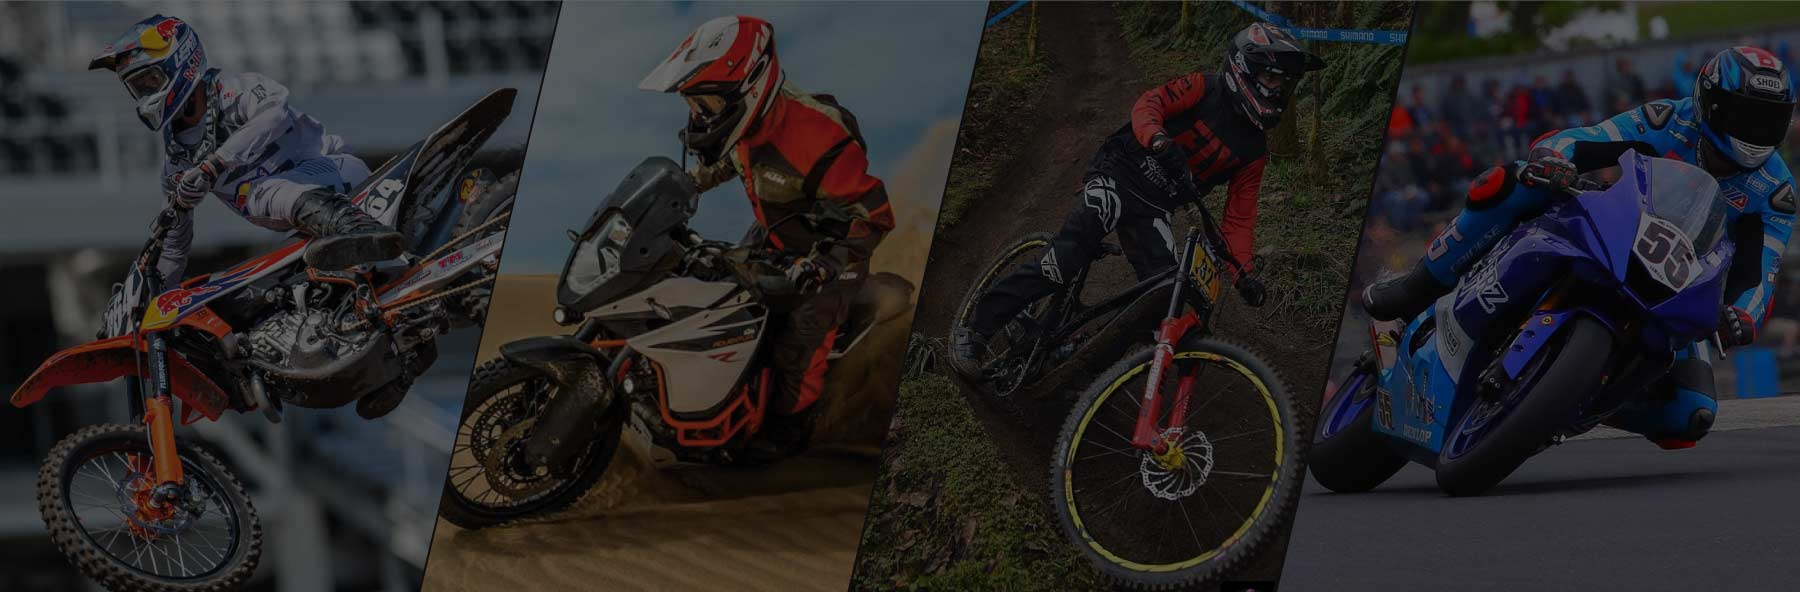 Off-road, street and adventure motorcycles and full suspension mountain bikes- suspension tuning and improved handling.